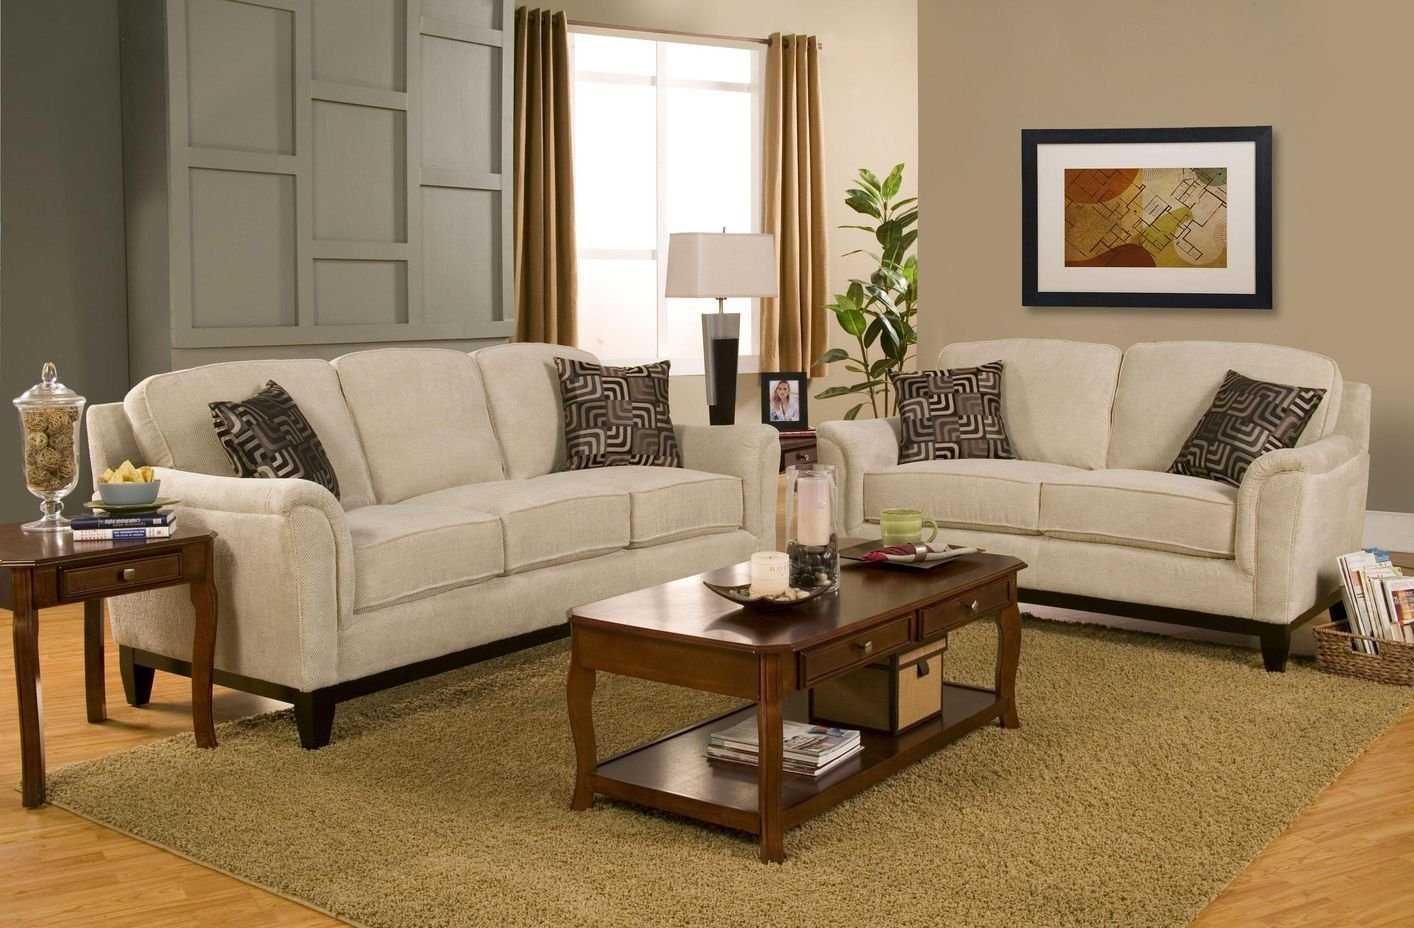 Living Room Sets Los Angeles carver beige fabric sofa - steal-a-sofa furniture outlet los